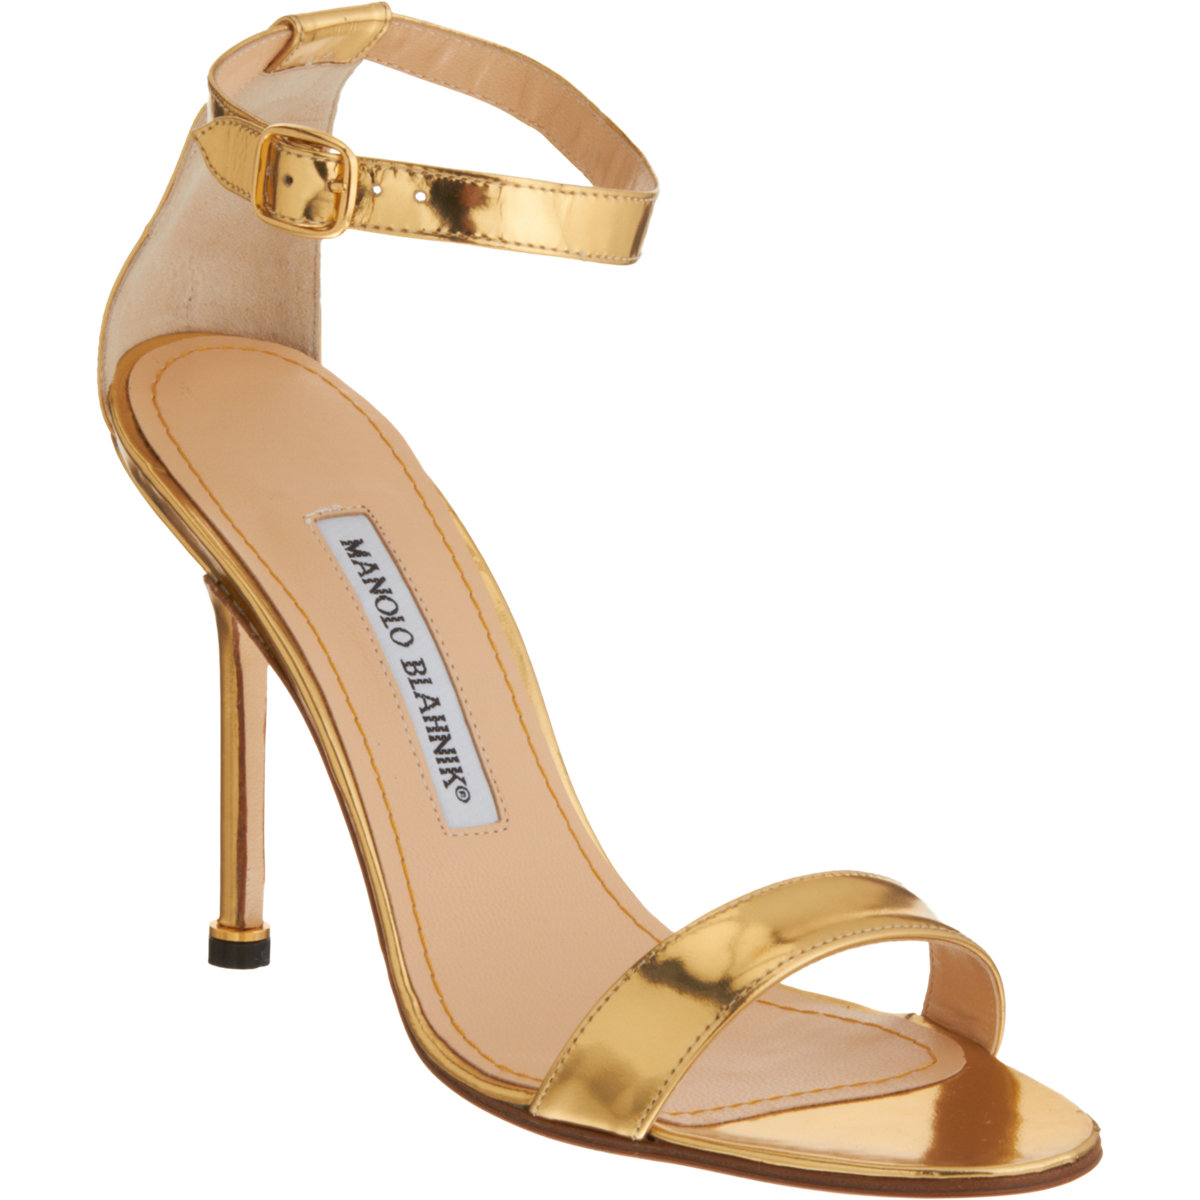 Manolo Blahnik Women S Chaos Ankle Strap Sandals In Gold